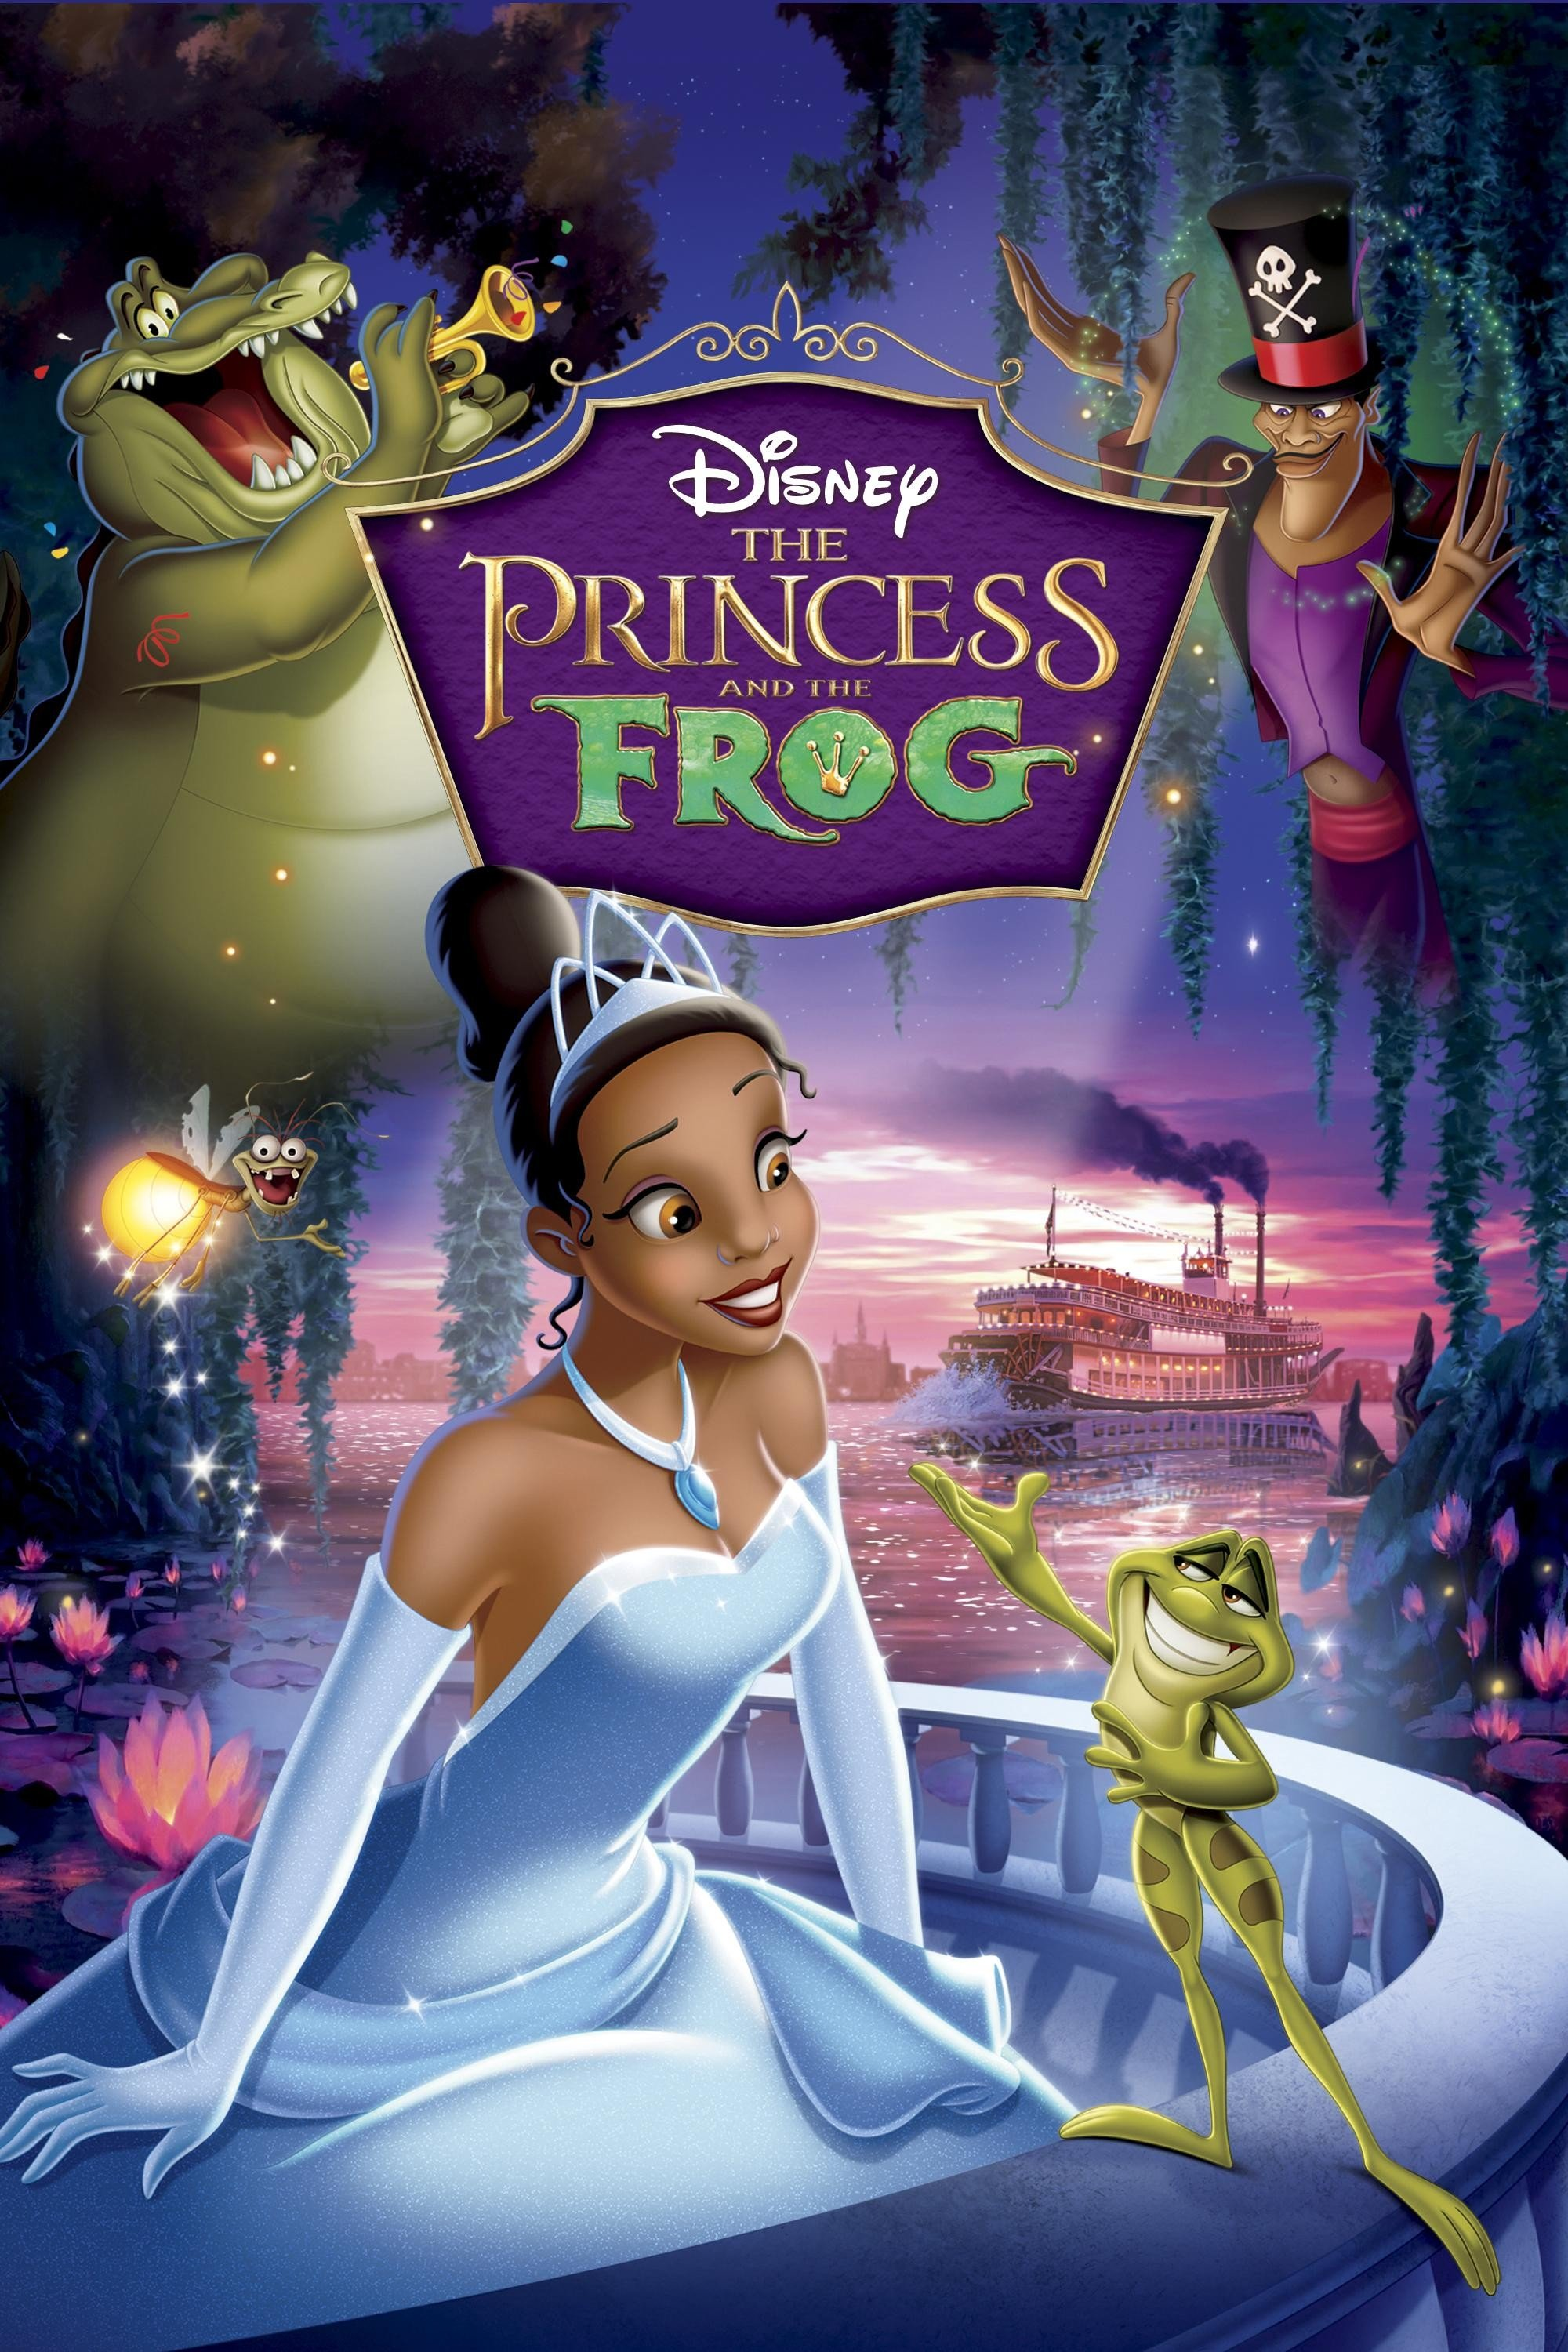 The Princess and the Frog 公主与青蛙